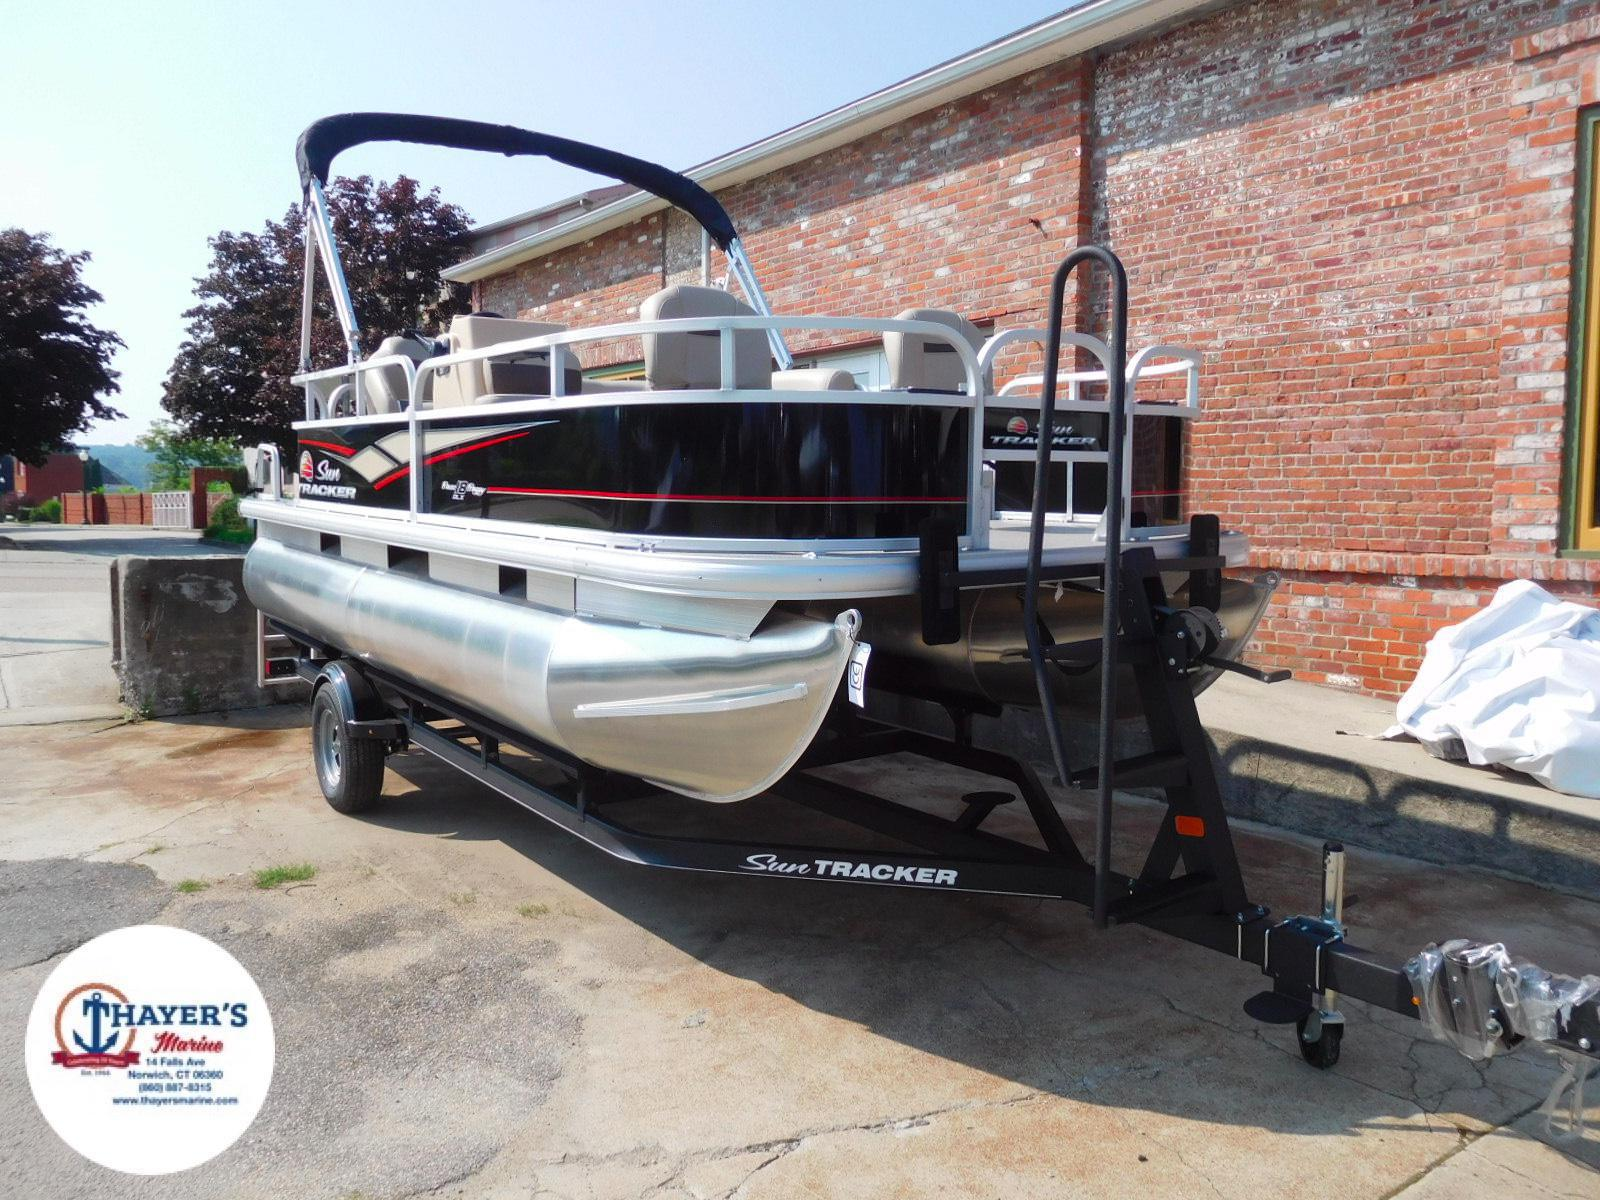 2018 Sun Tracker boat for sale, model of the boat is Bass Buggy 18 DLX & Image # 35 of 35